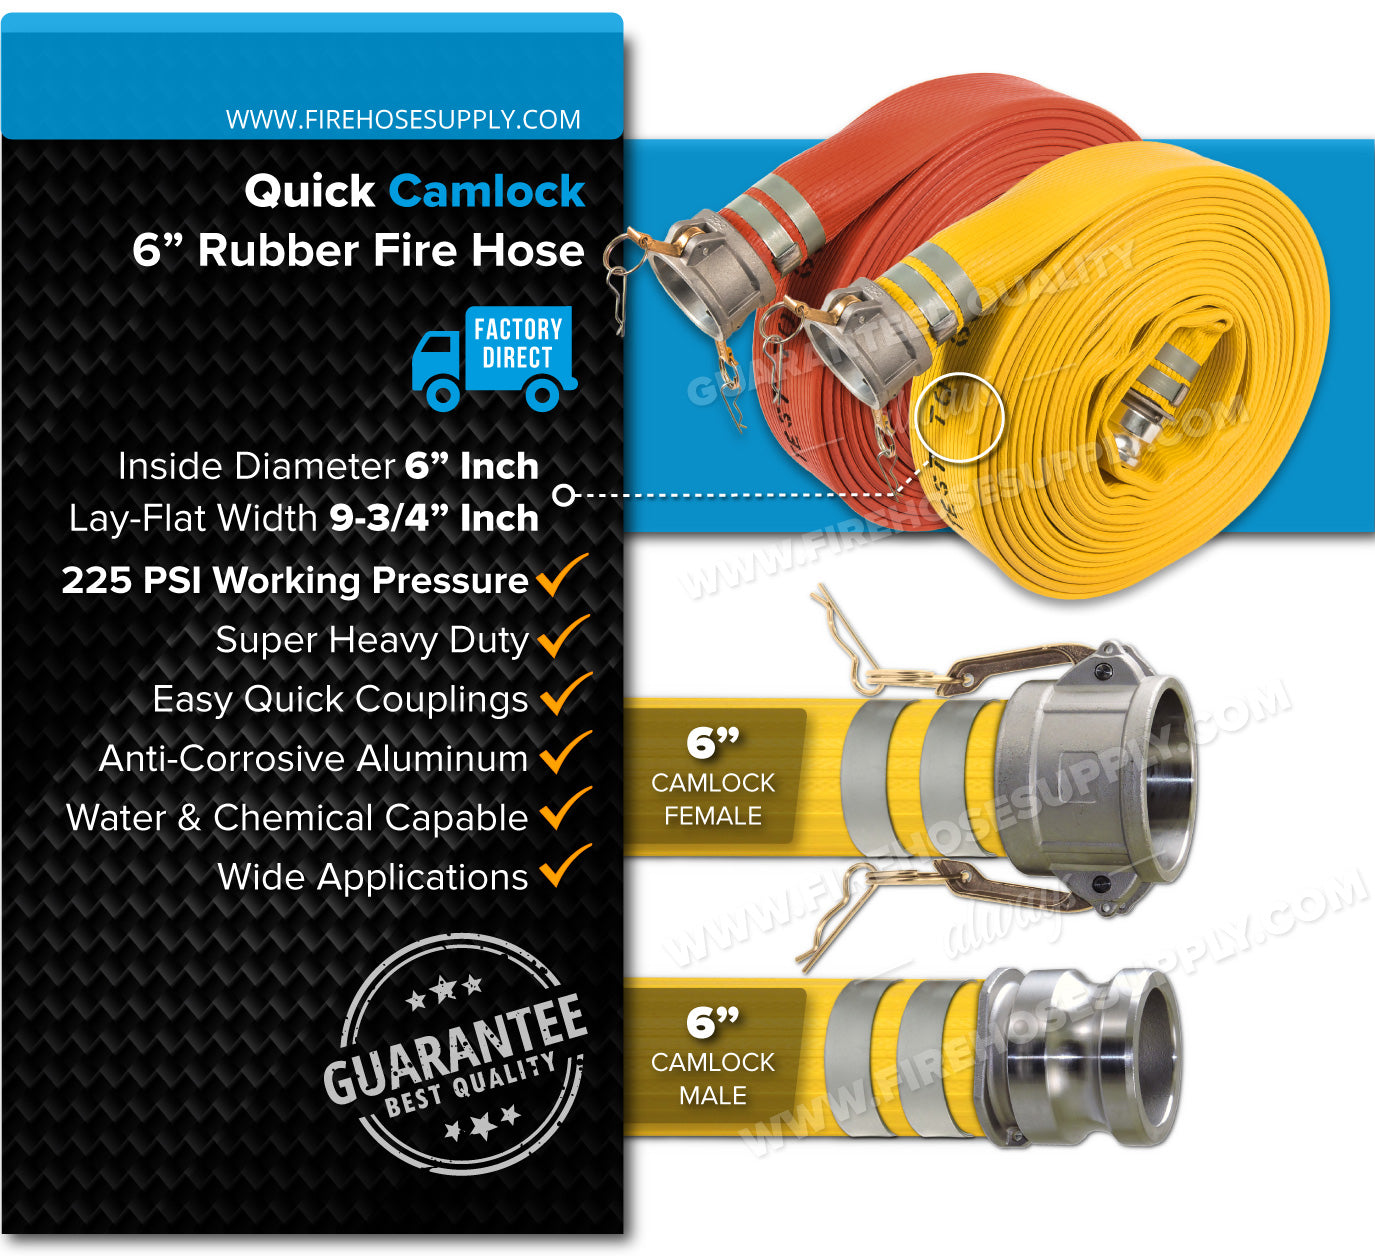 6 Inch Rubber Camlock Fire Hose Overview